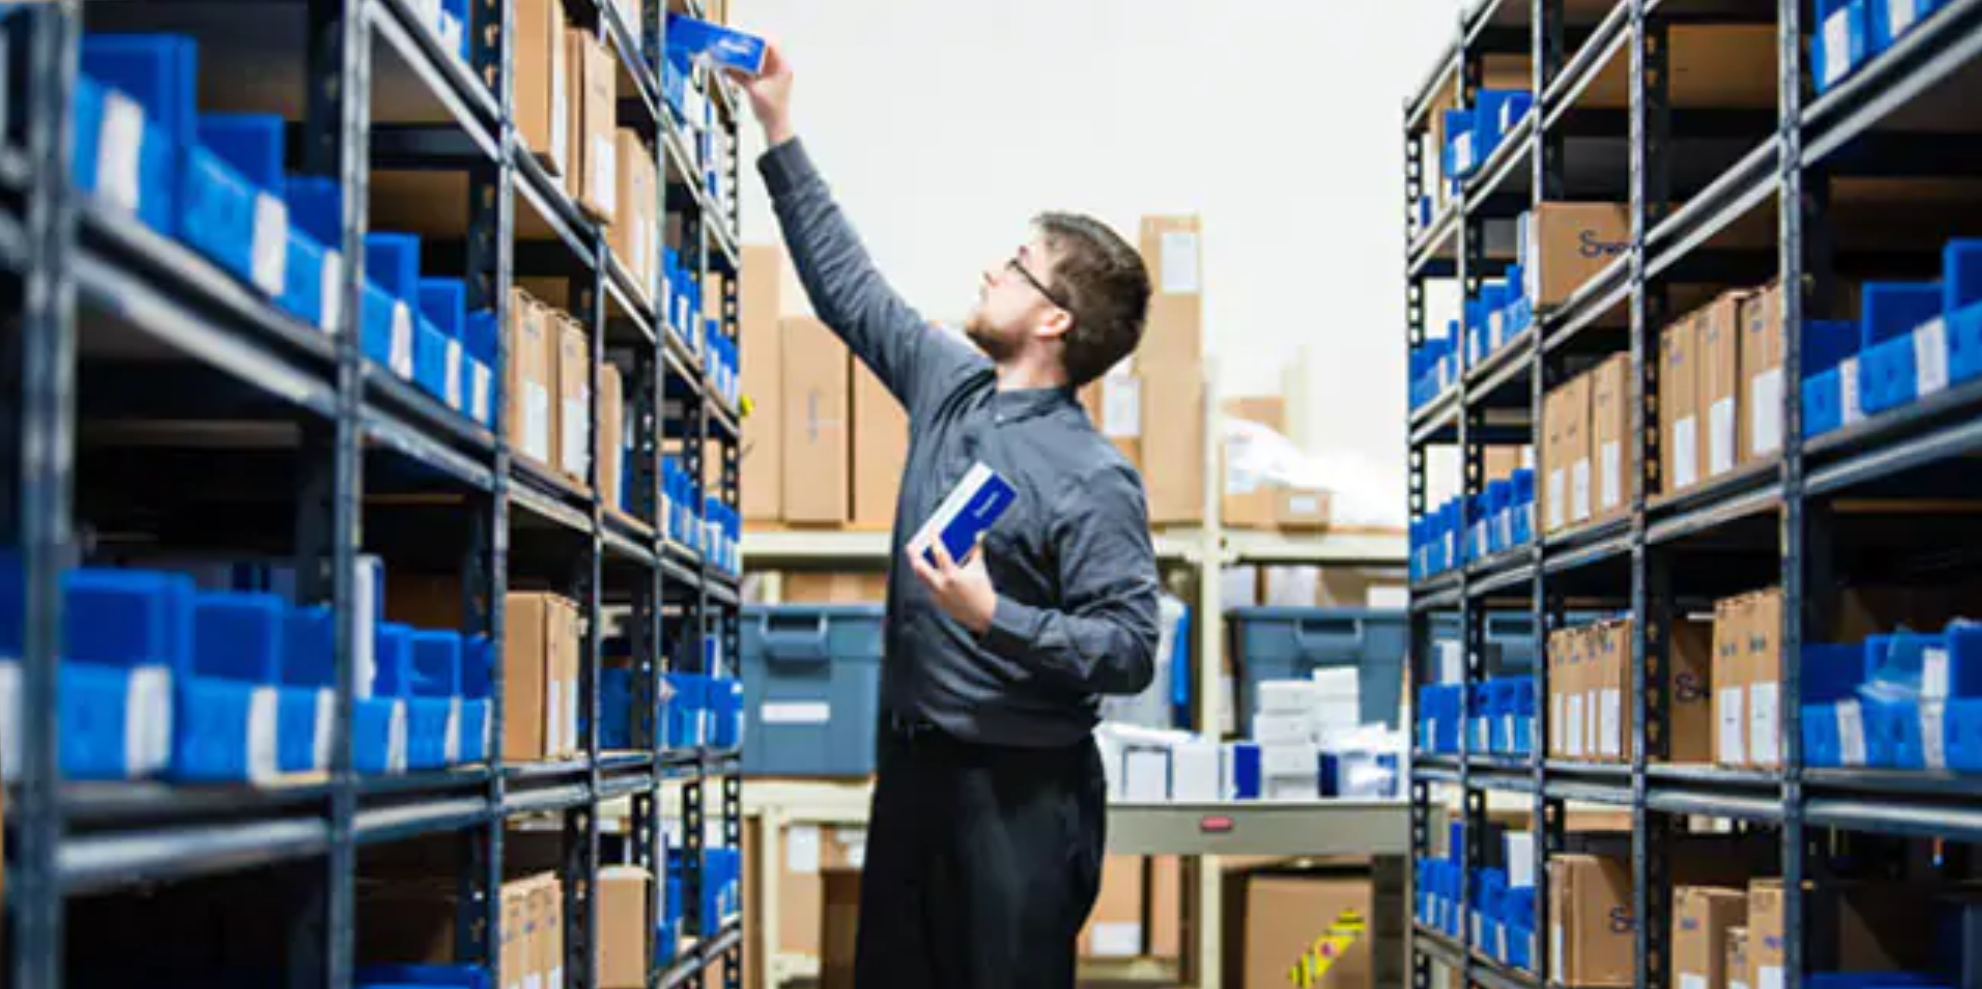 Swagelok Northern California maintains inventory of parts and components.